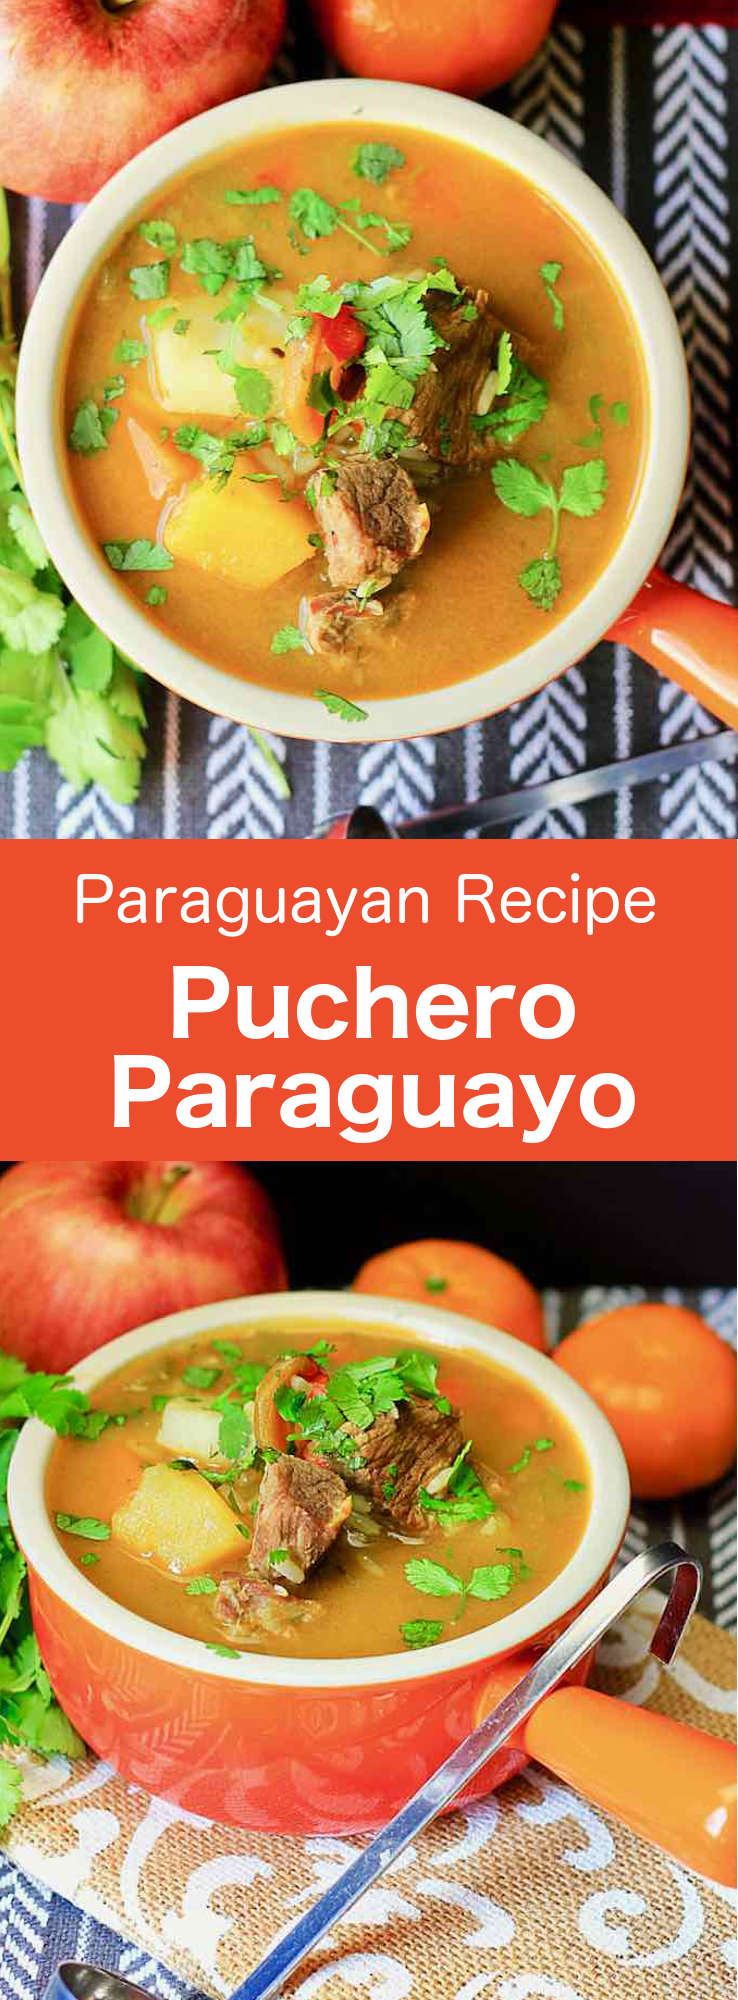 Puchero paraguayo is the Paraguayan version of a traditional meat stew that is originally from Spain, and now prepared in several countries throughout South America and the Philippines. The name comes from the Spanish word, which means